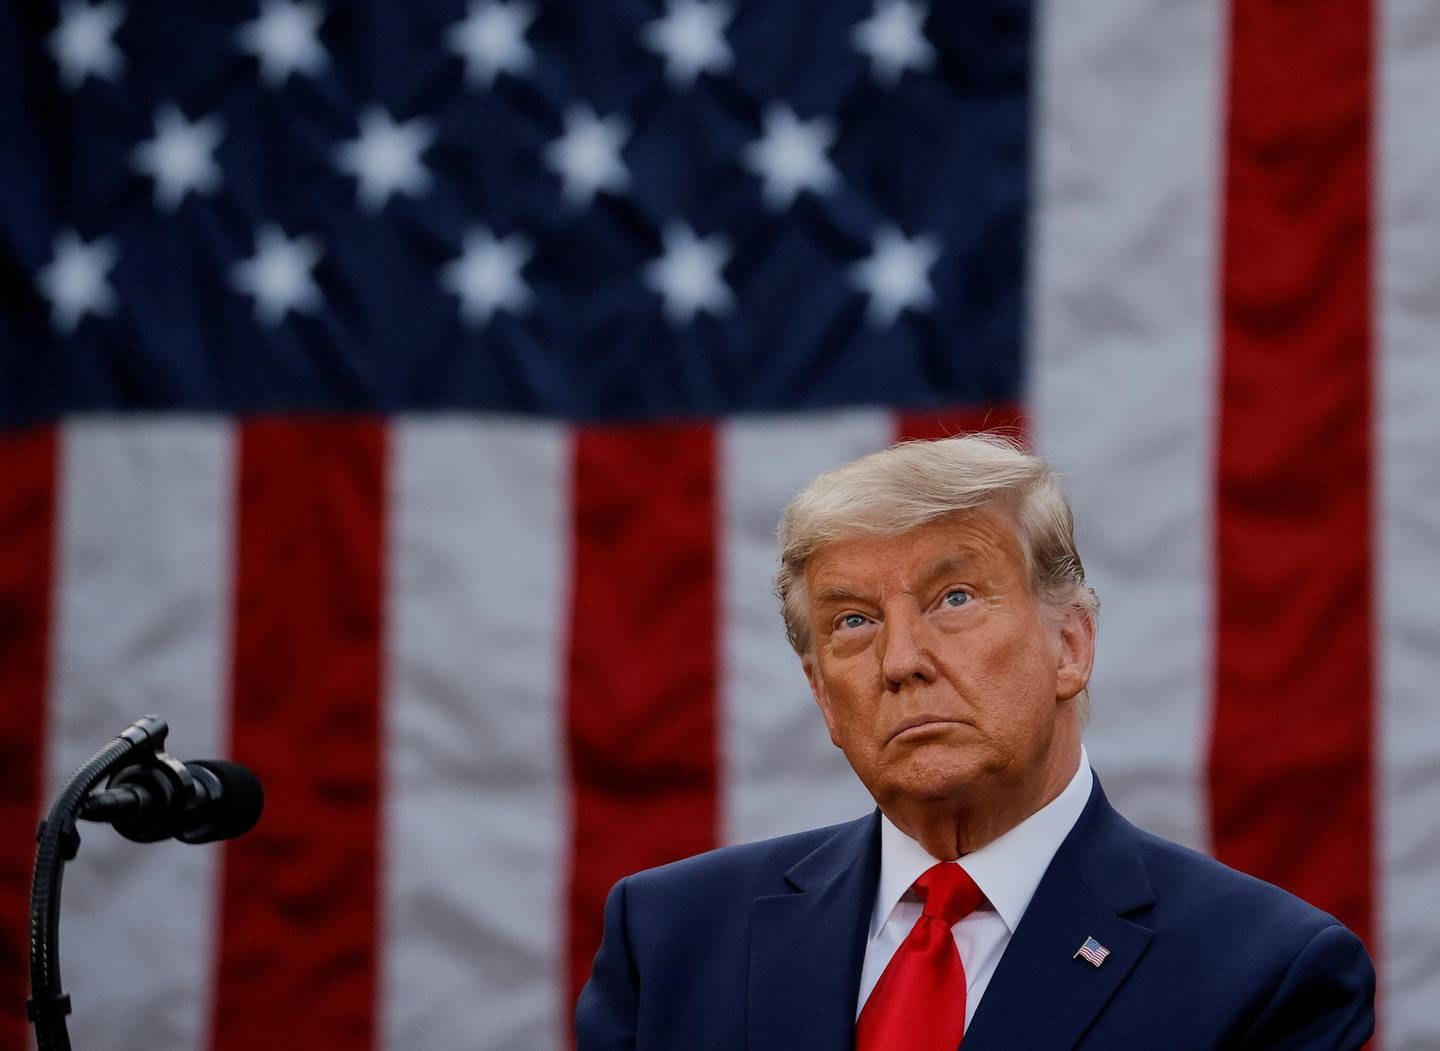 FILE PHOTO: U.S. President Donald Trump delivers an address from the Rose Garden at the White House in Washington, U.S., November 13, 2020. REUTERS/Carlos Barria//File Photo